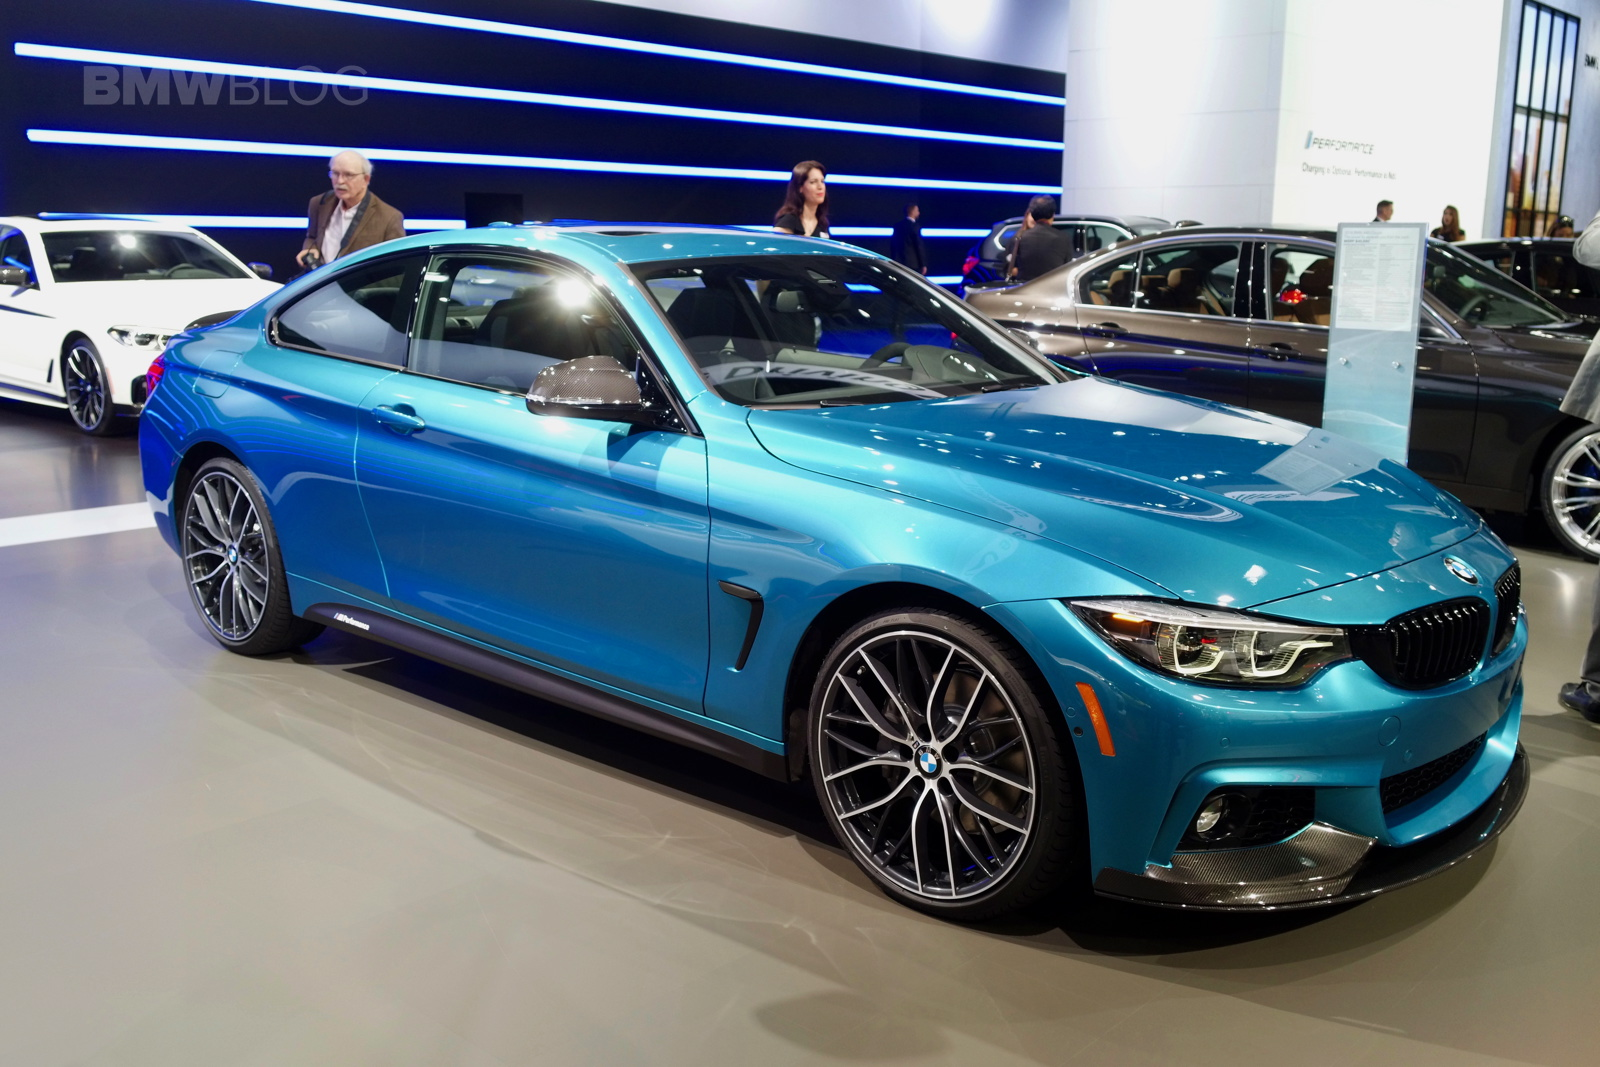 2019 Bmw 4 Series Will See A Price Increase Of 1 300